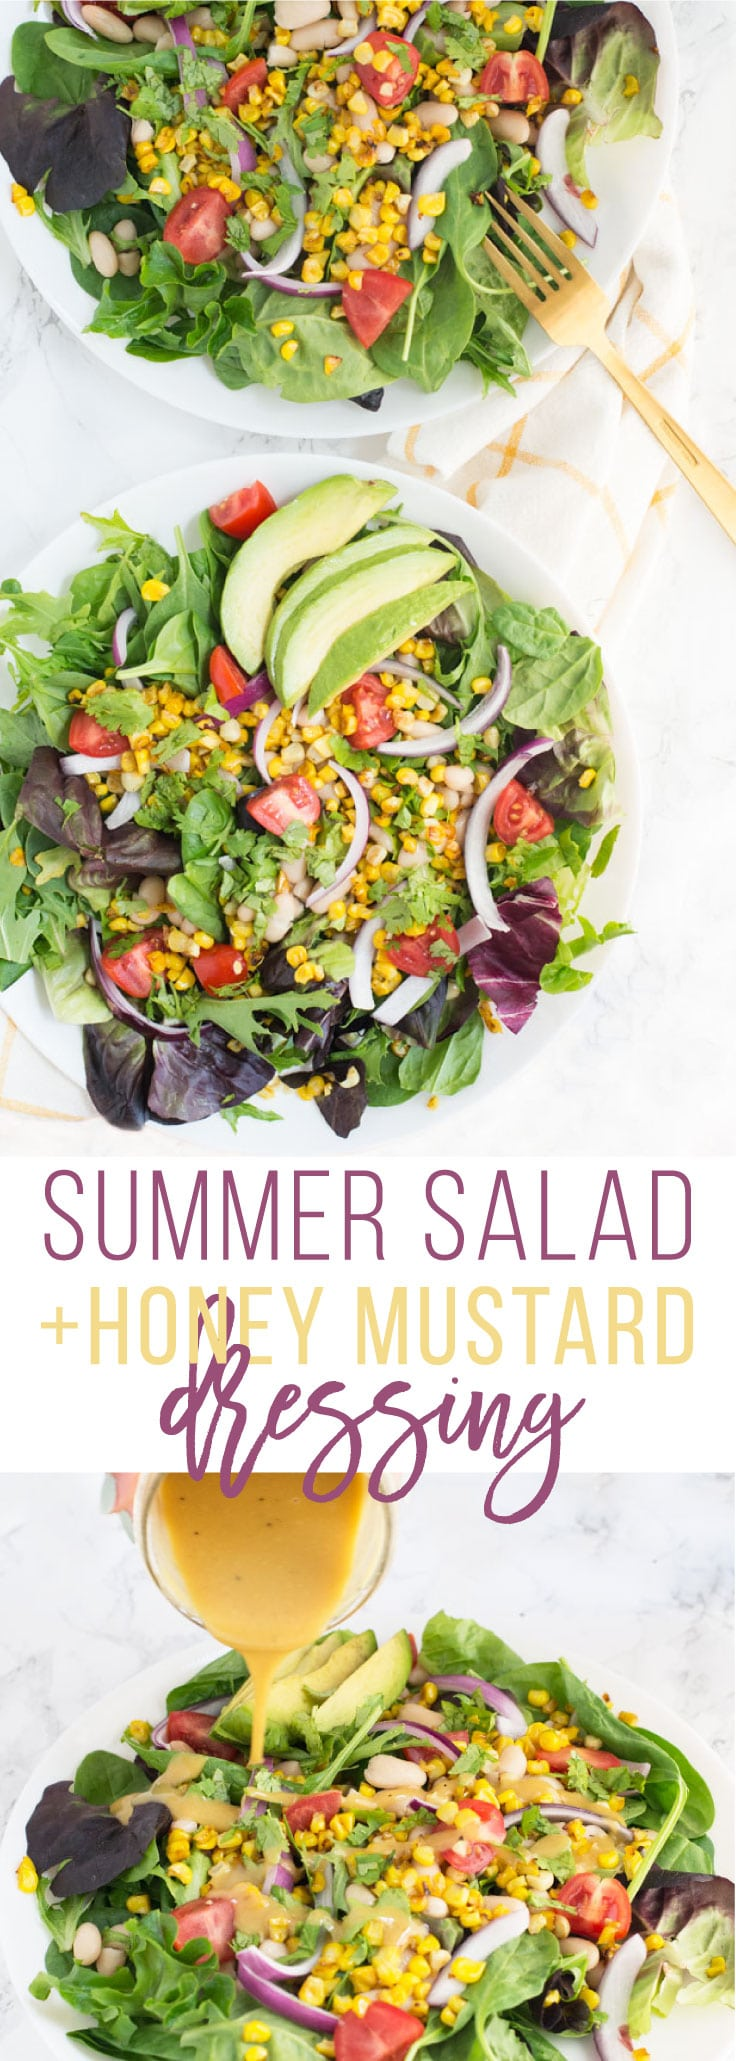 Summer Market Salad with Honey Mustard Dressing -- This light and refreshing green salad is packed with seasonal vegetables! Drizzled in a sweet and tangy honey mustard dressing, this salad is delicious and perfect for a light Summer meal. #vegetarian #healthy #salad #summer #delicious   mindfulavocado